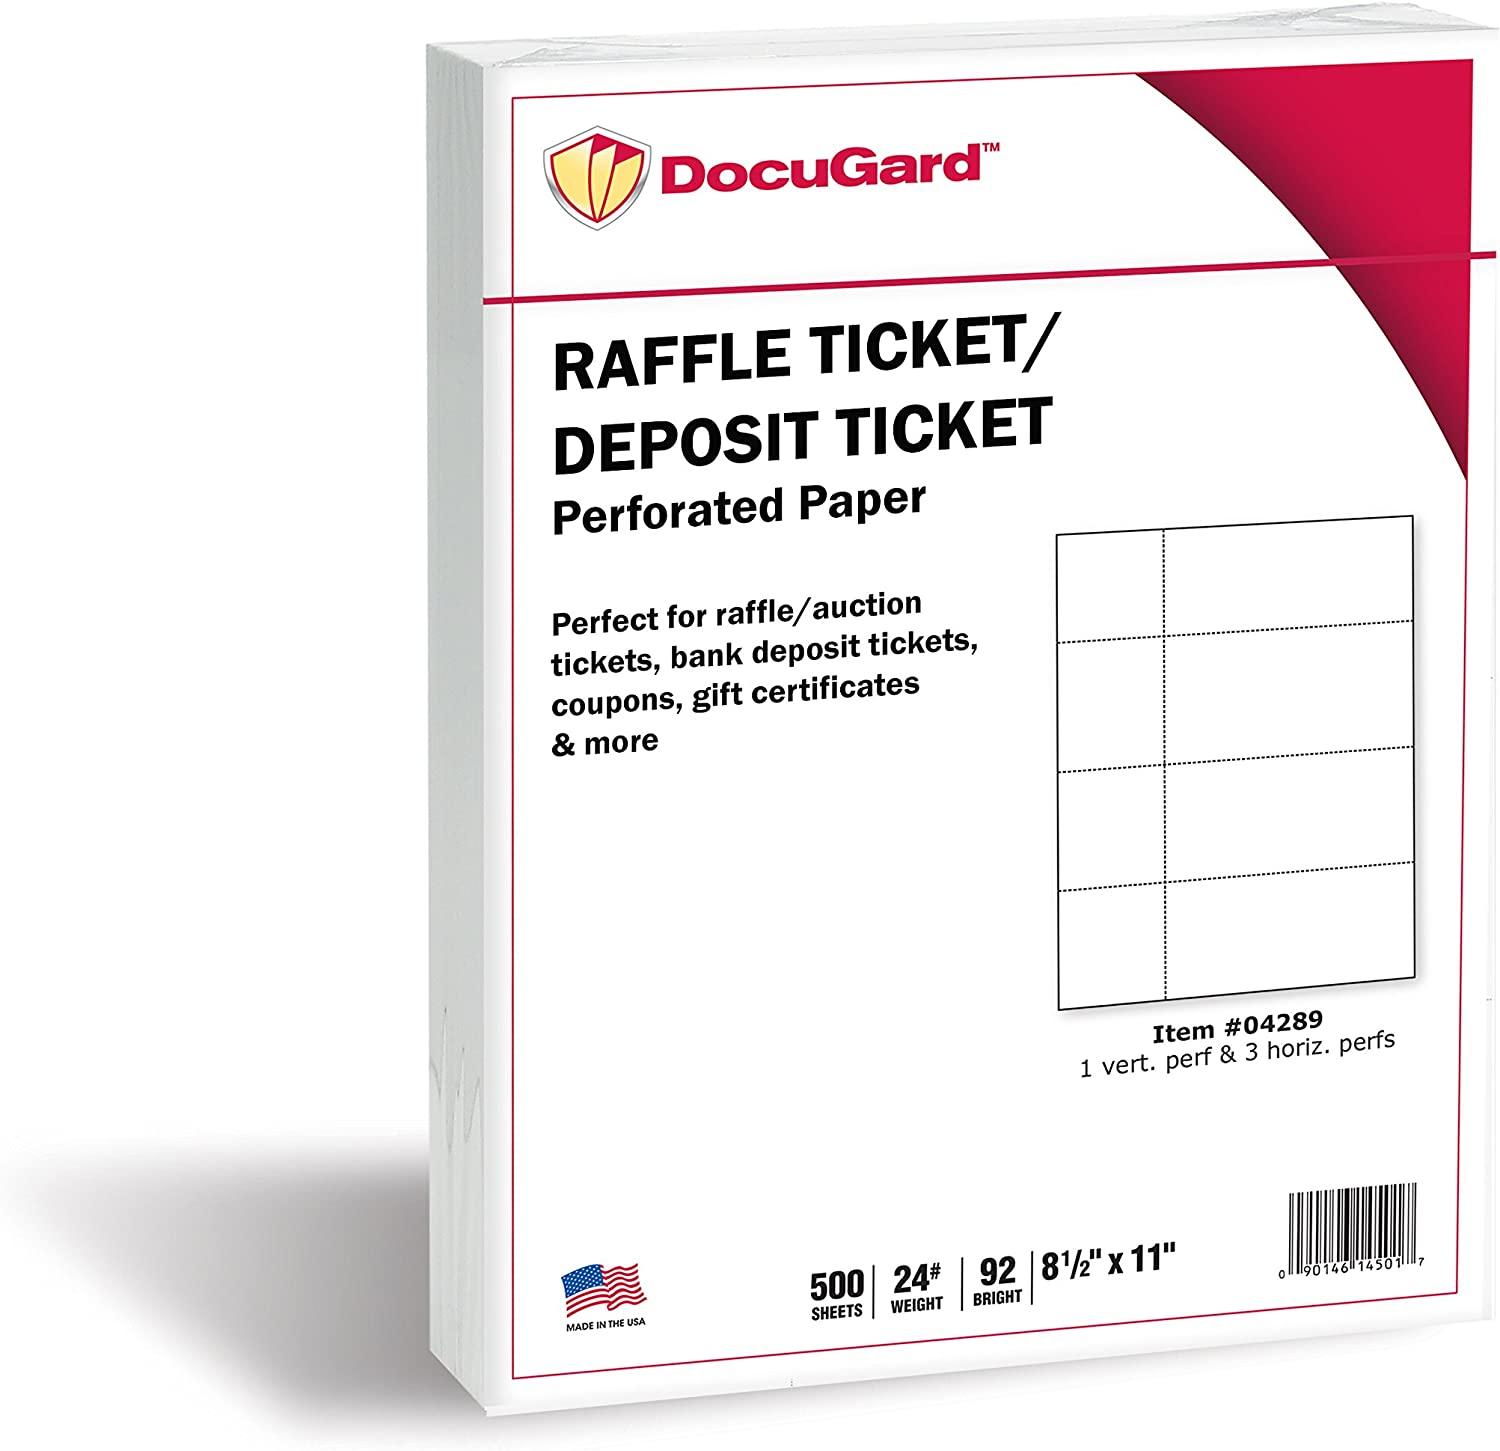 24 lb Tear-Away Stubs 500 Sheets Raffle Tickets and More 04289-1 4 Perfs DocuGard Perforated Paper for Deposit Tickets 8.5 x 11 White